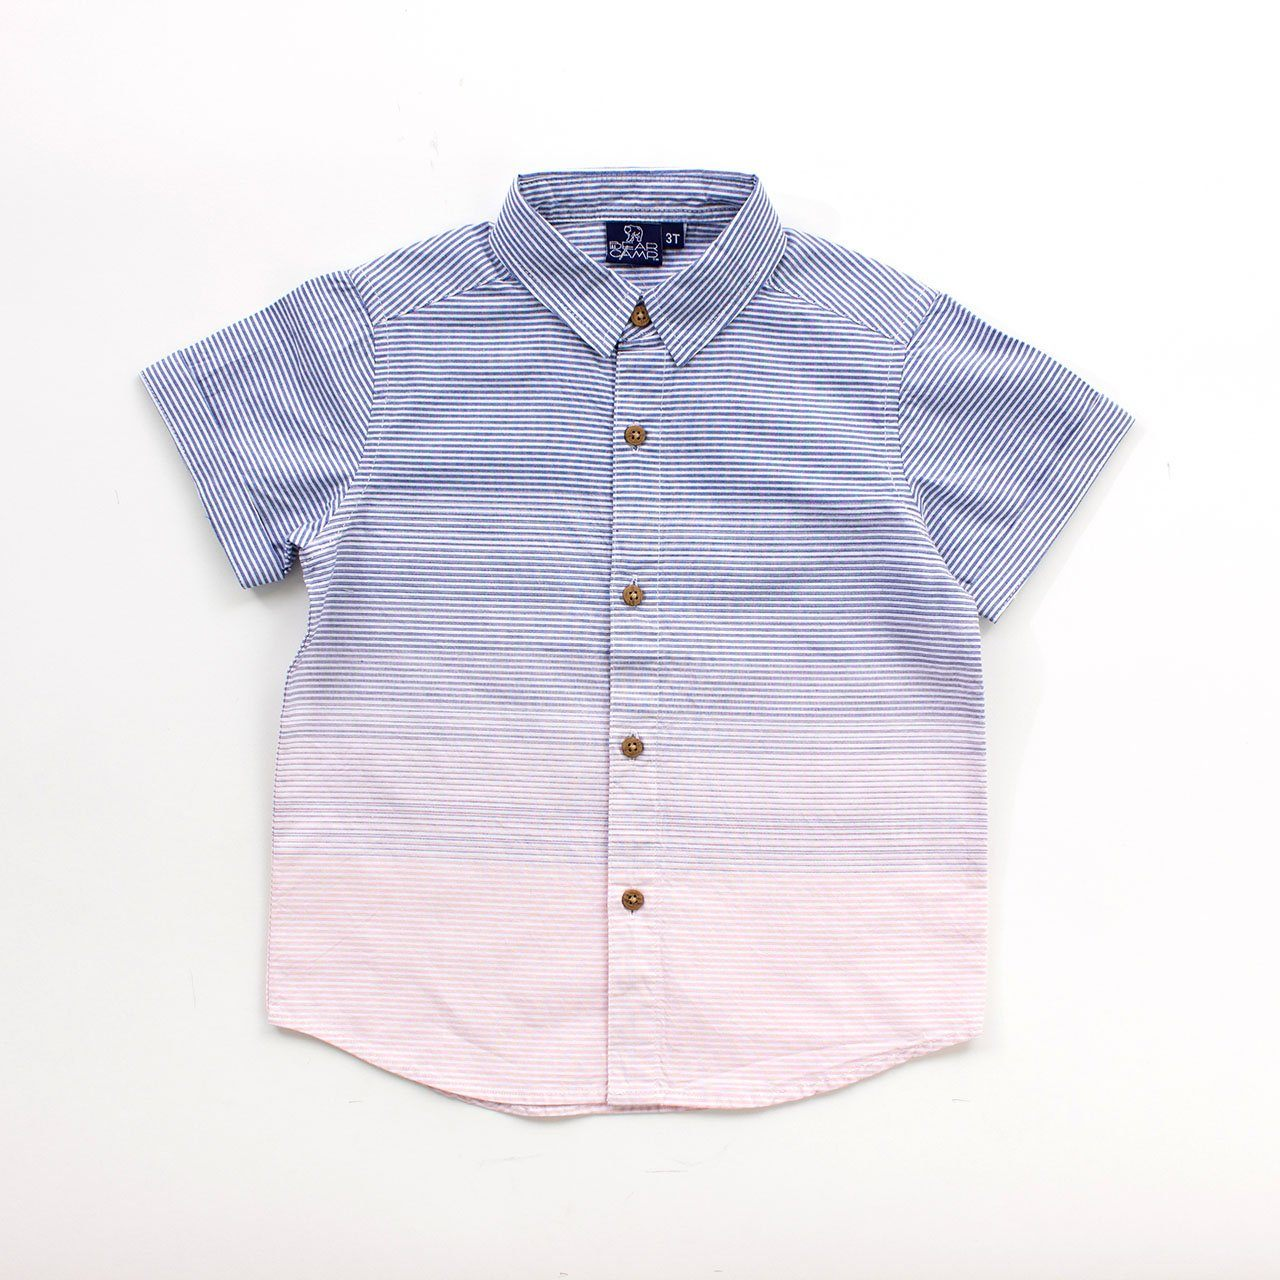 Toddler, Short Sleeve Button Down - Gideon Button Down Toddler